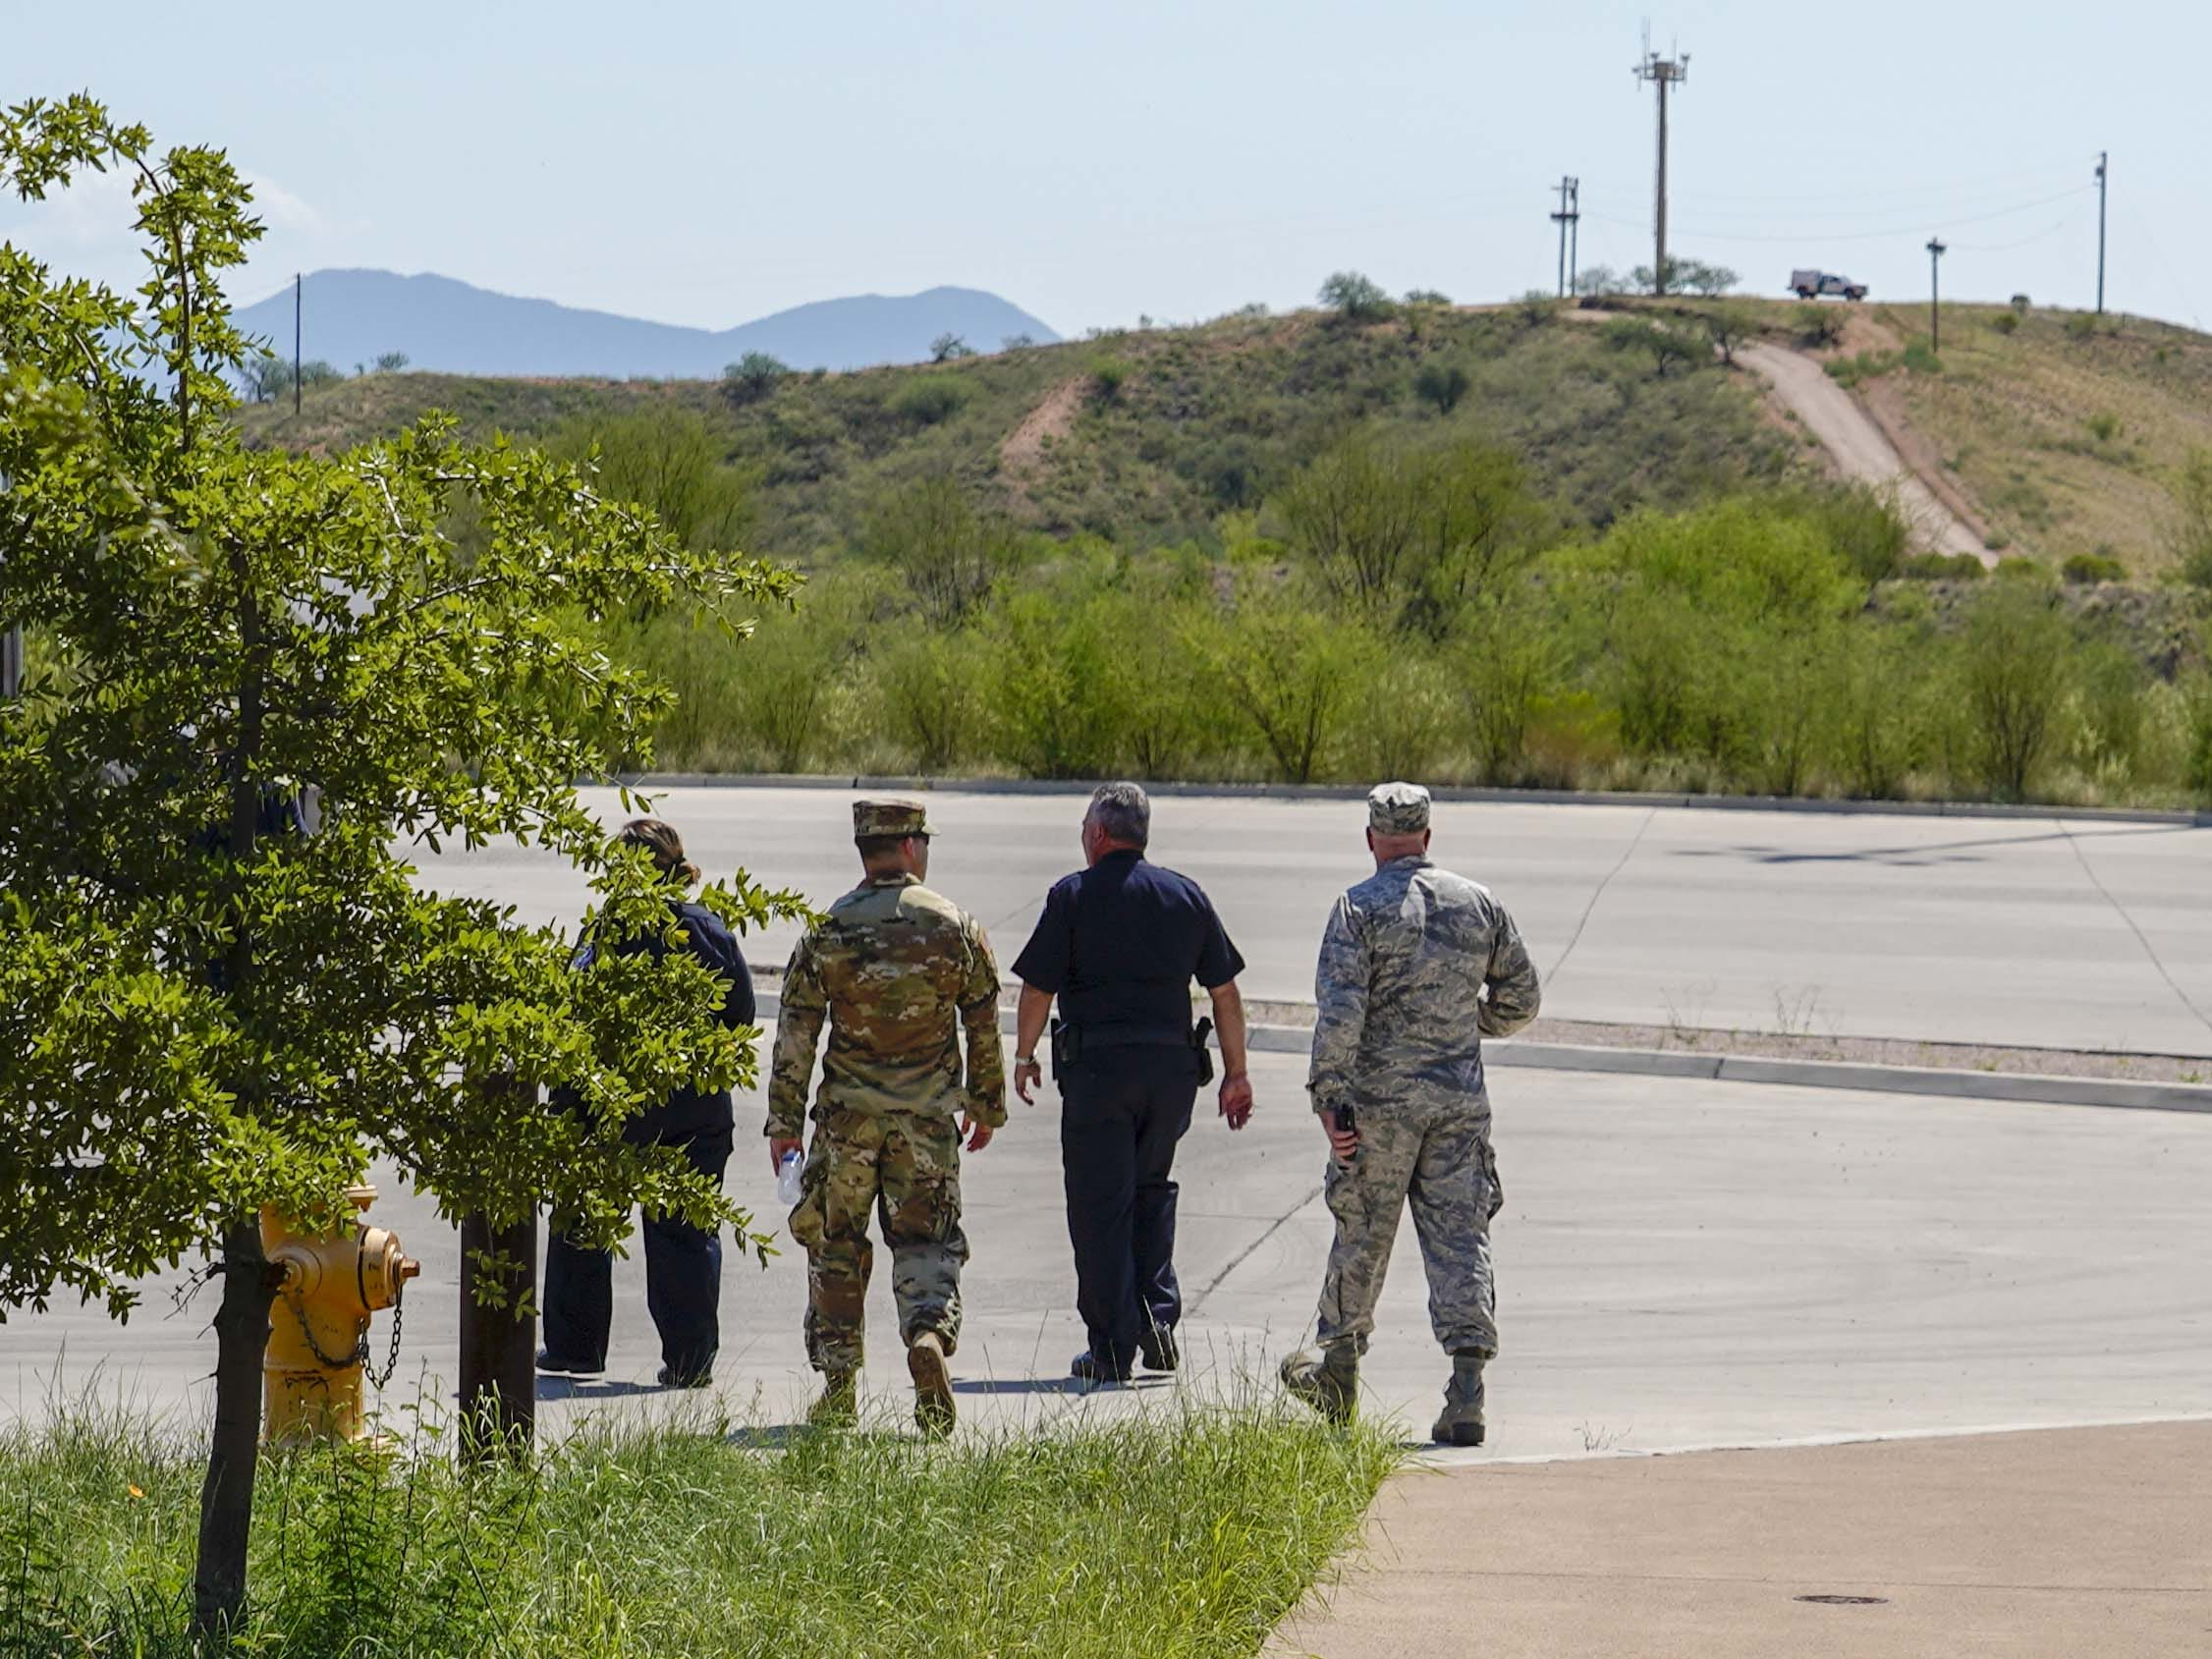 National Guard personnel perform their Operation Guardian Support responsibilities Aug. 1, 2018, at the Port of Nogales (Mariposa Crossing) in Nogales, Arizona.